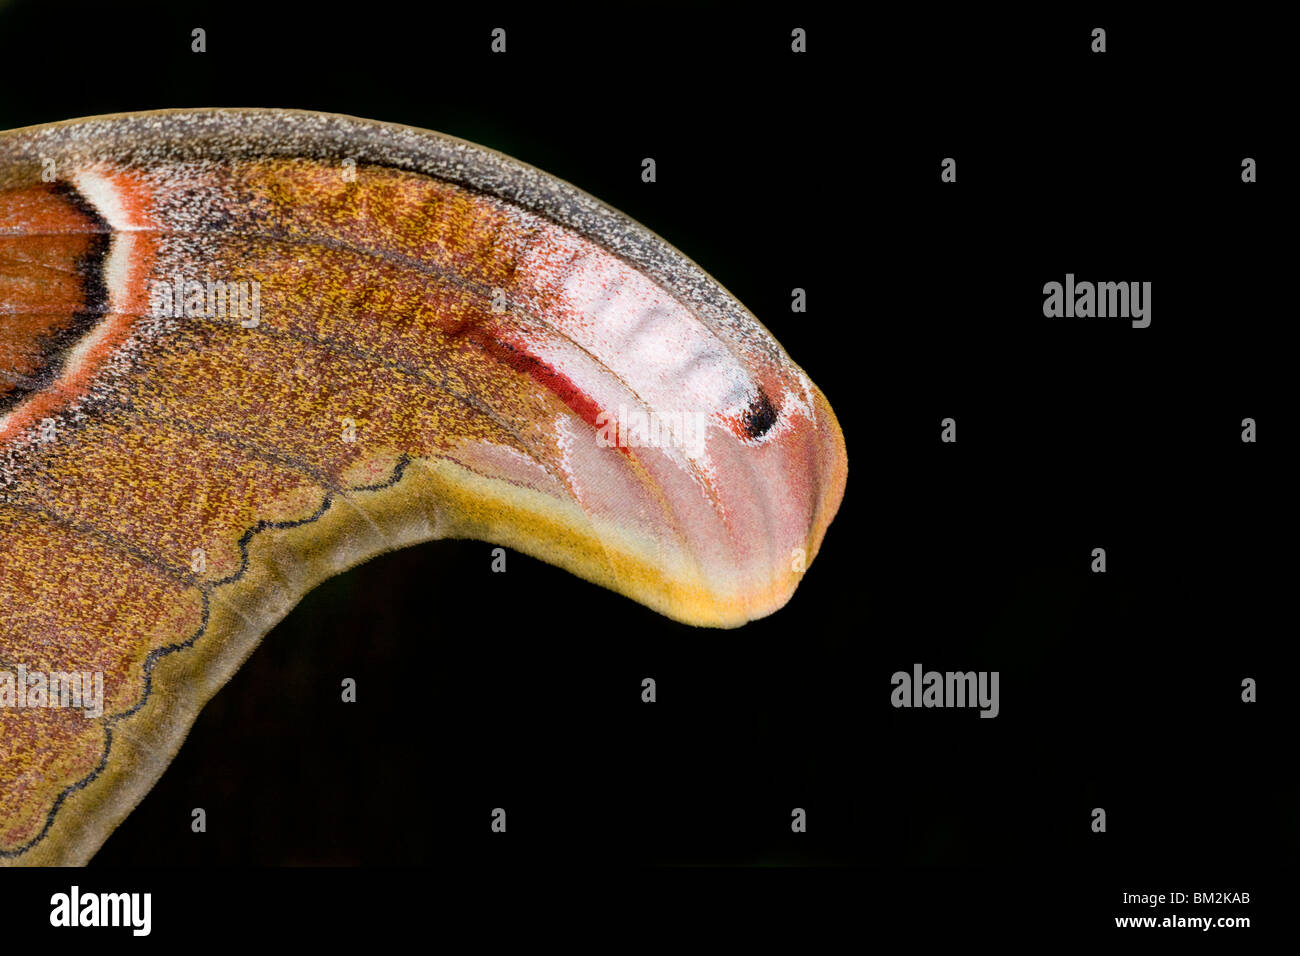 Close-up of wing of Atlas moth (Attacus atlas) - Stock Image